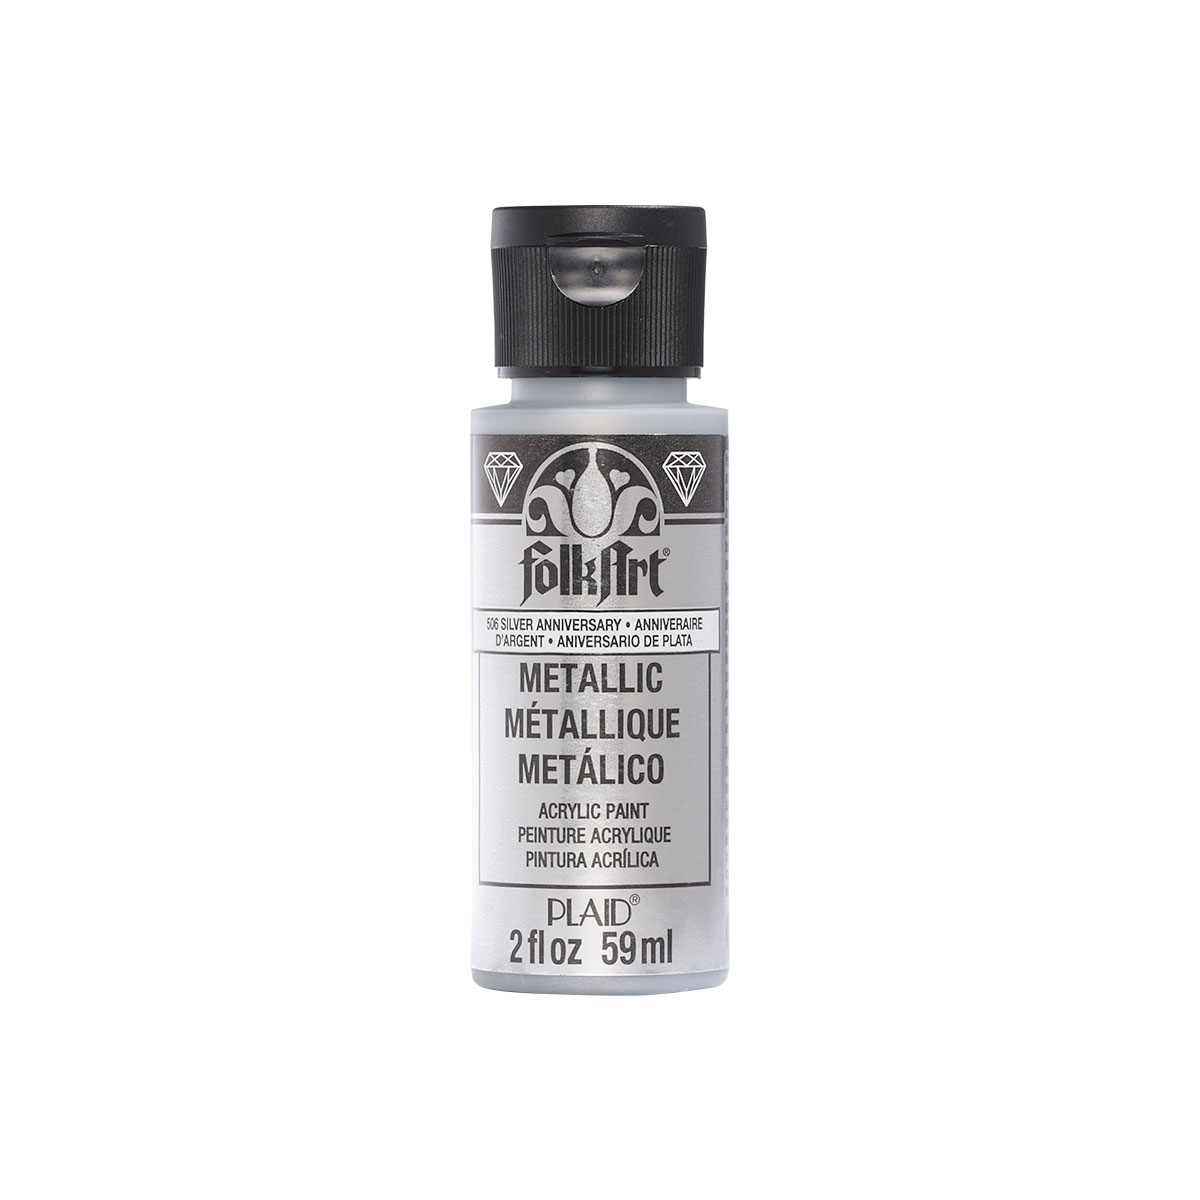 Plaid Folkart Metallic Acrylic Paint In Assorted Colors (2 Oz),Silver Anniversary